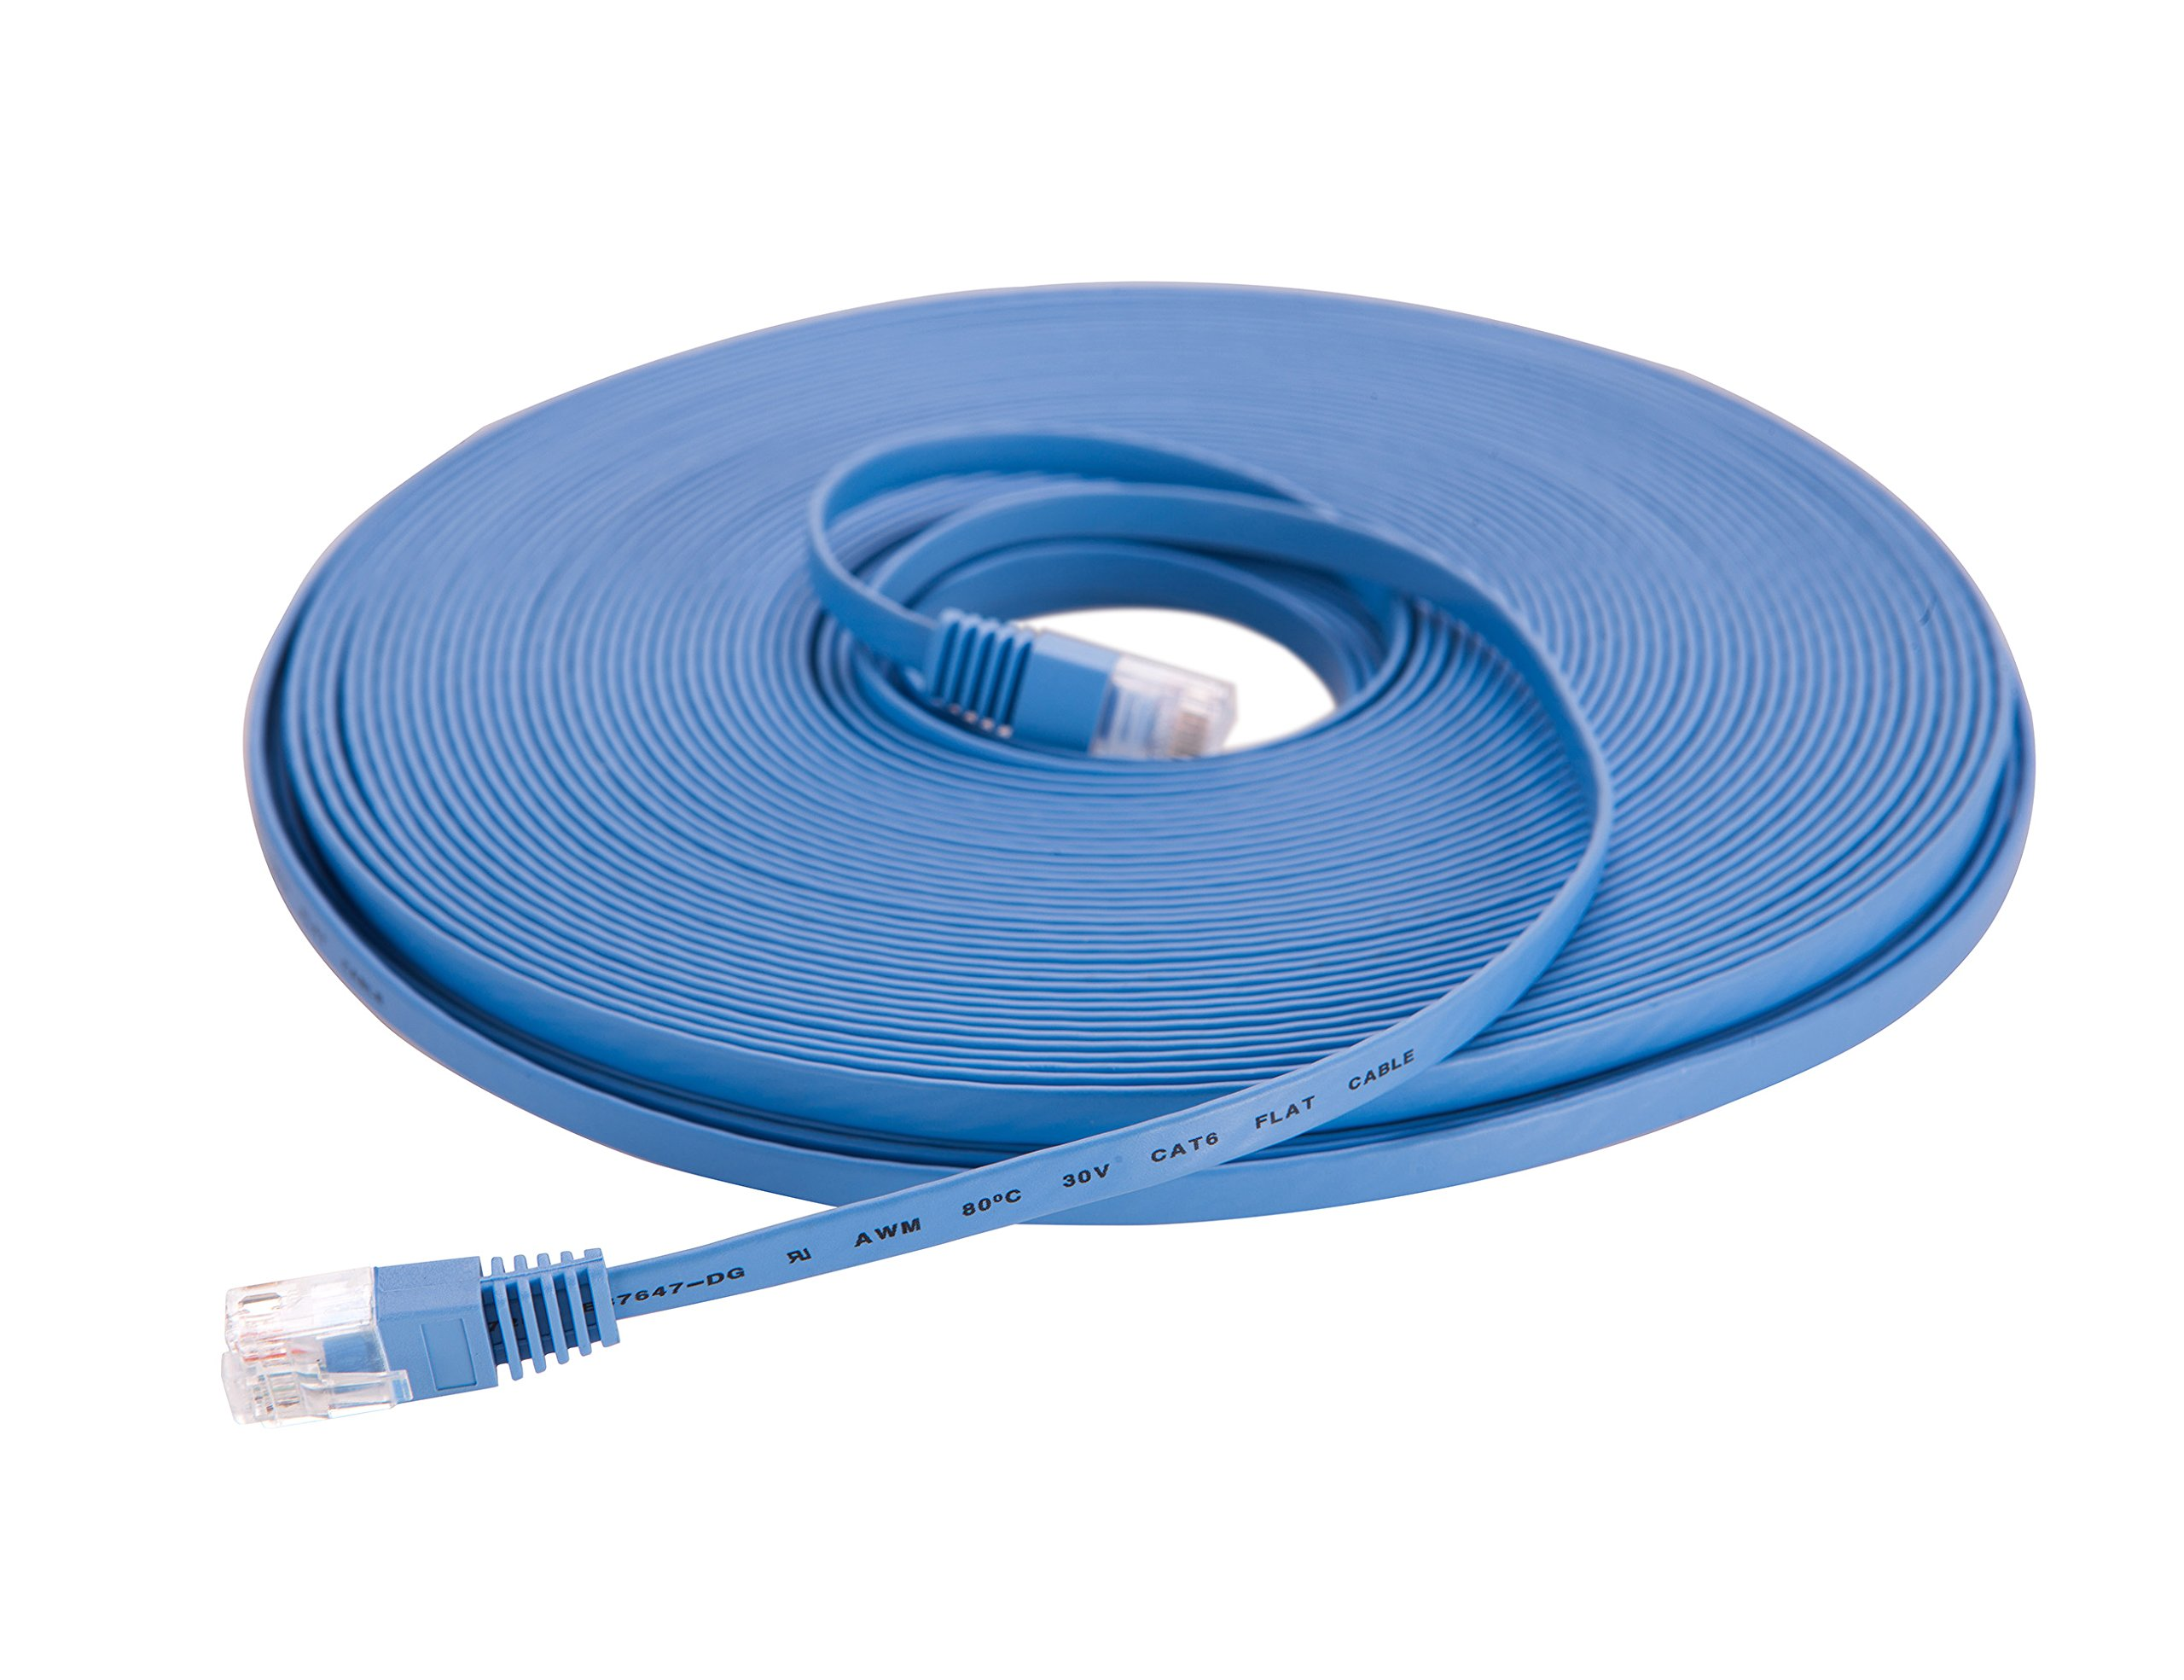 Pan-International P173A-17 Cat6 UTP Ethernet Cable 100ft- Flat Internet Network Cable - With RJ45 Connectors-100 Feet (30 Meters), Blue